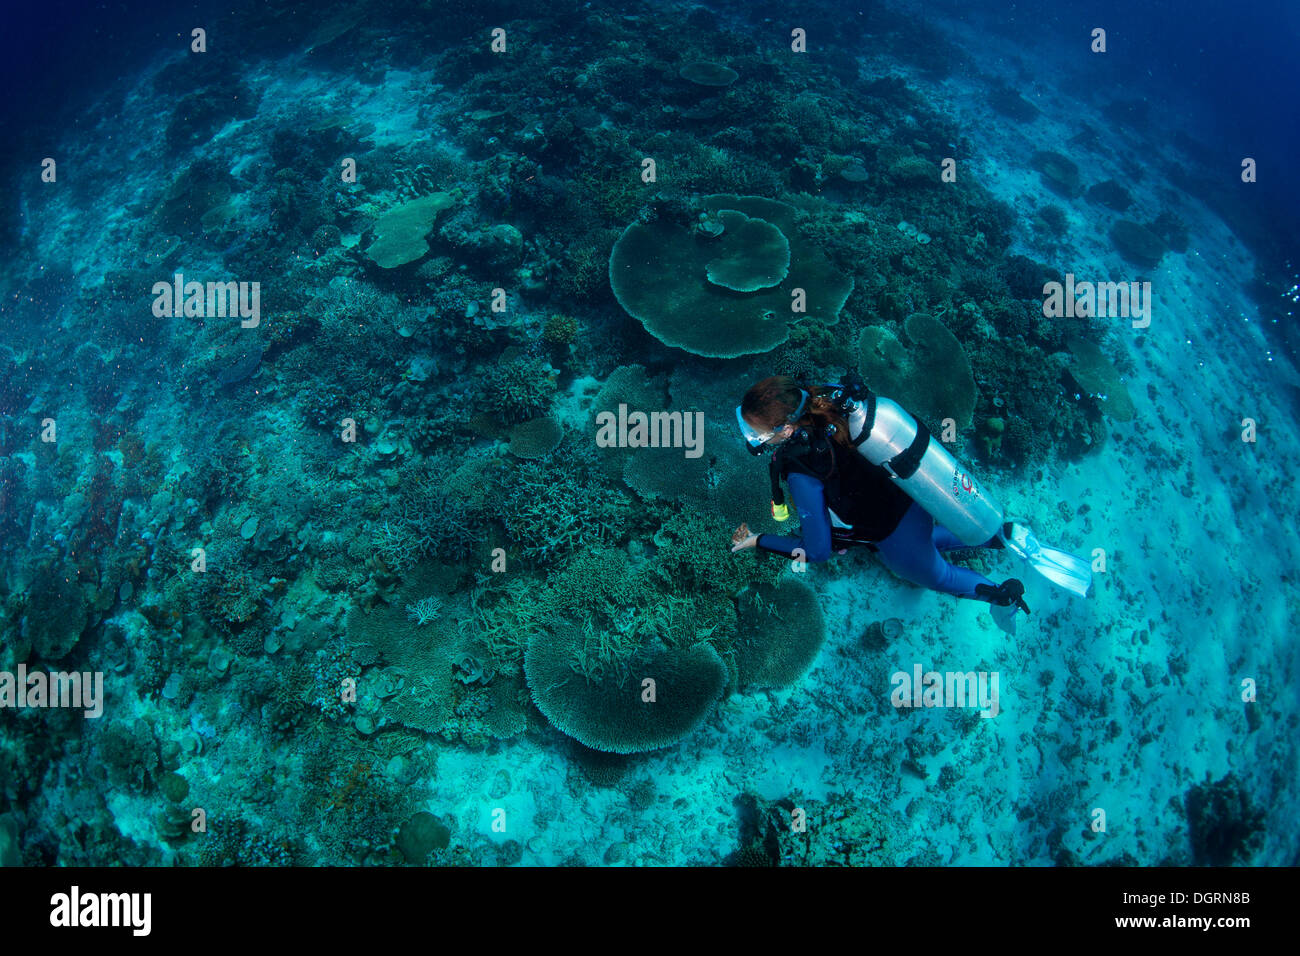 Diver at a coral reef, South China Sea, Mulaong, -, Mimaropa, Philippines - Stock Image